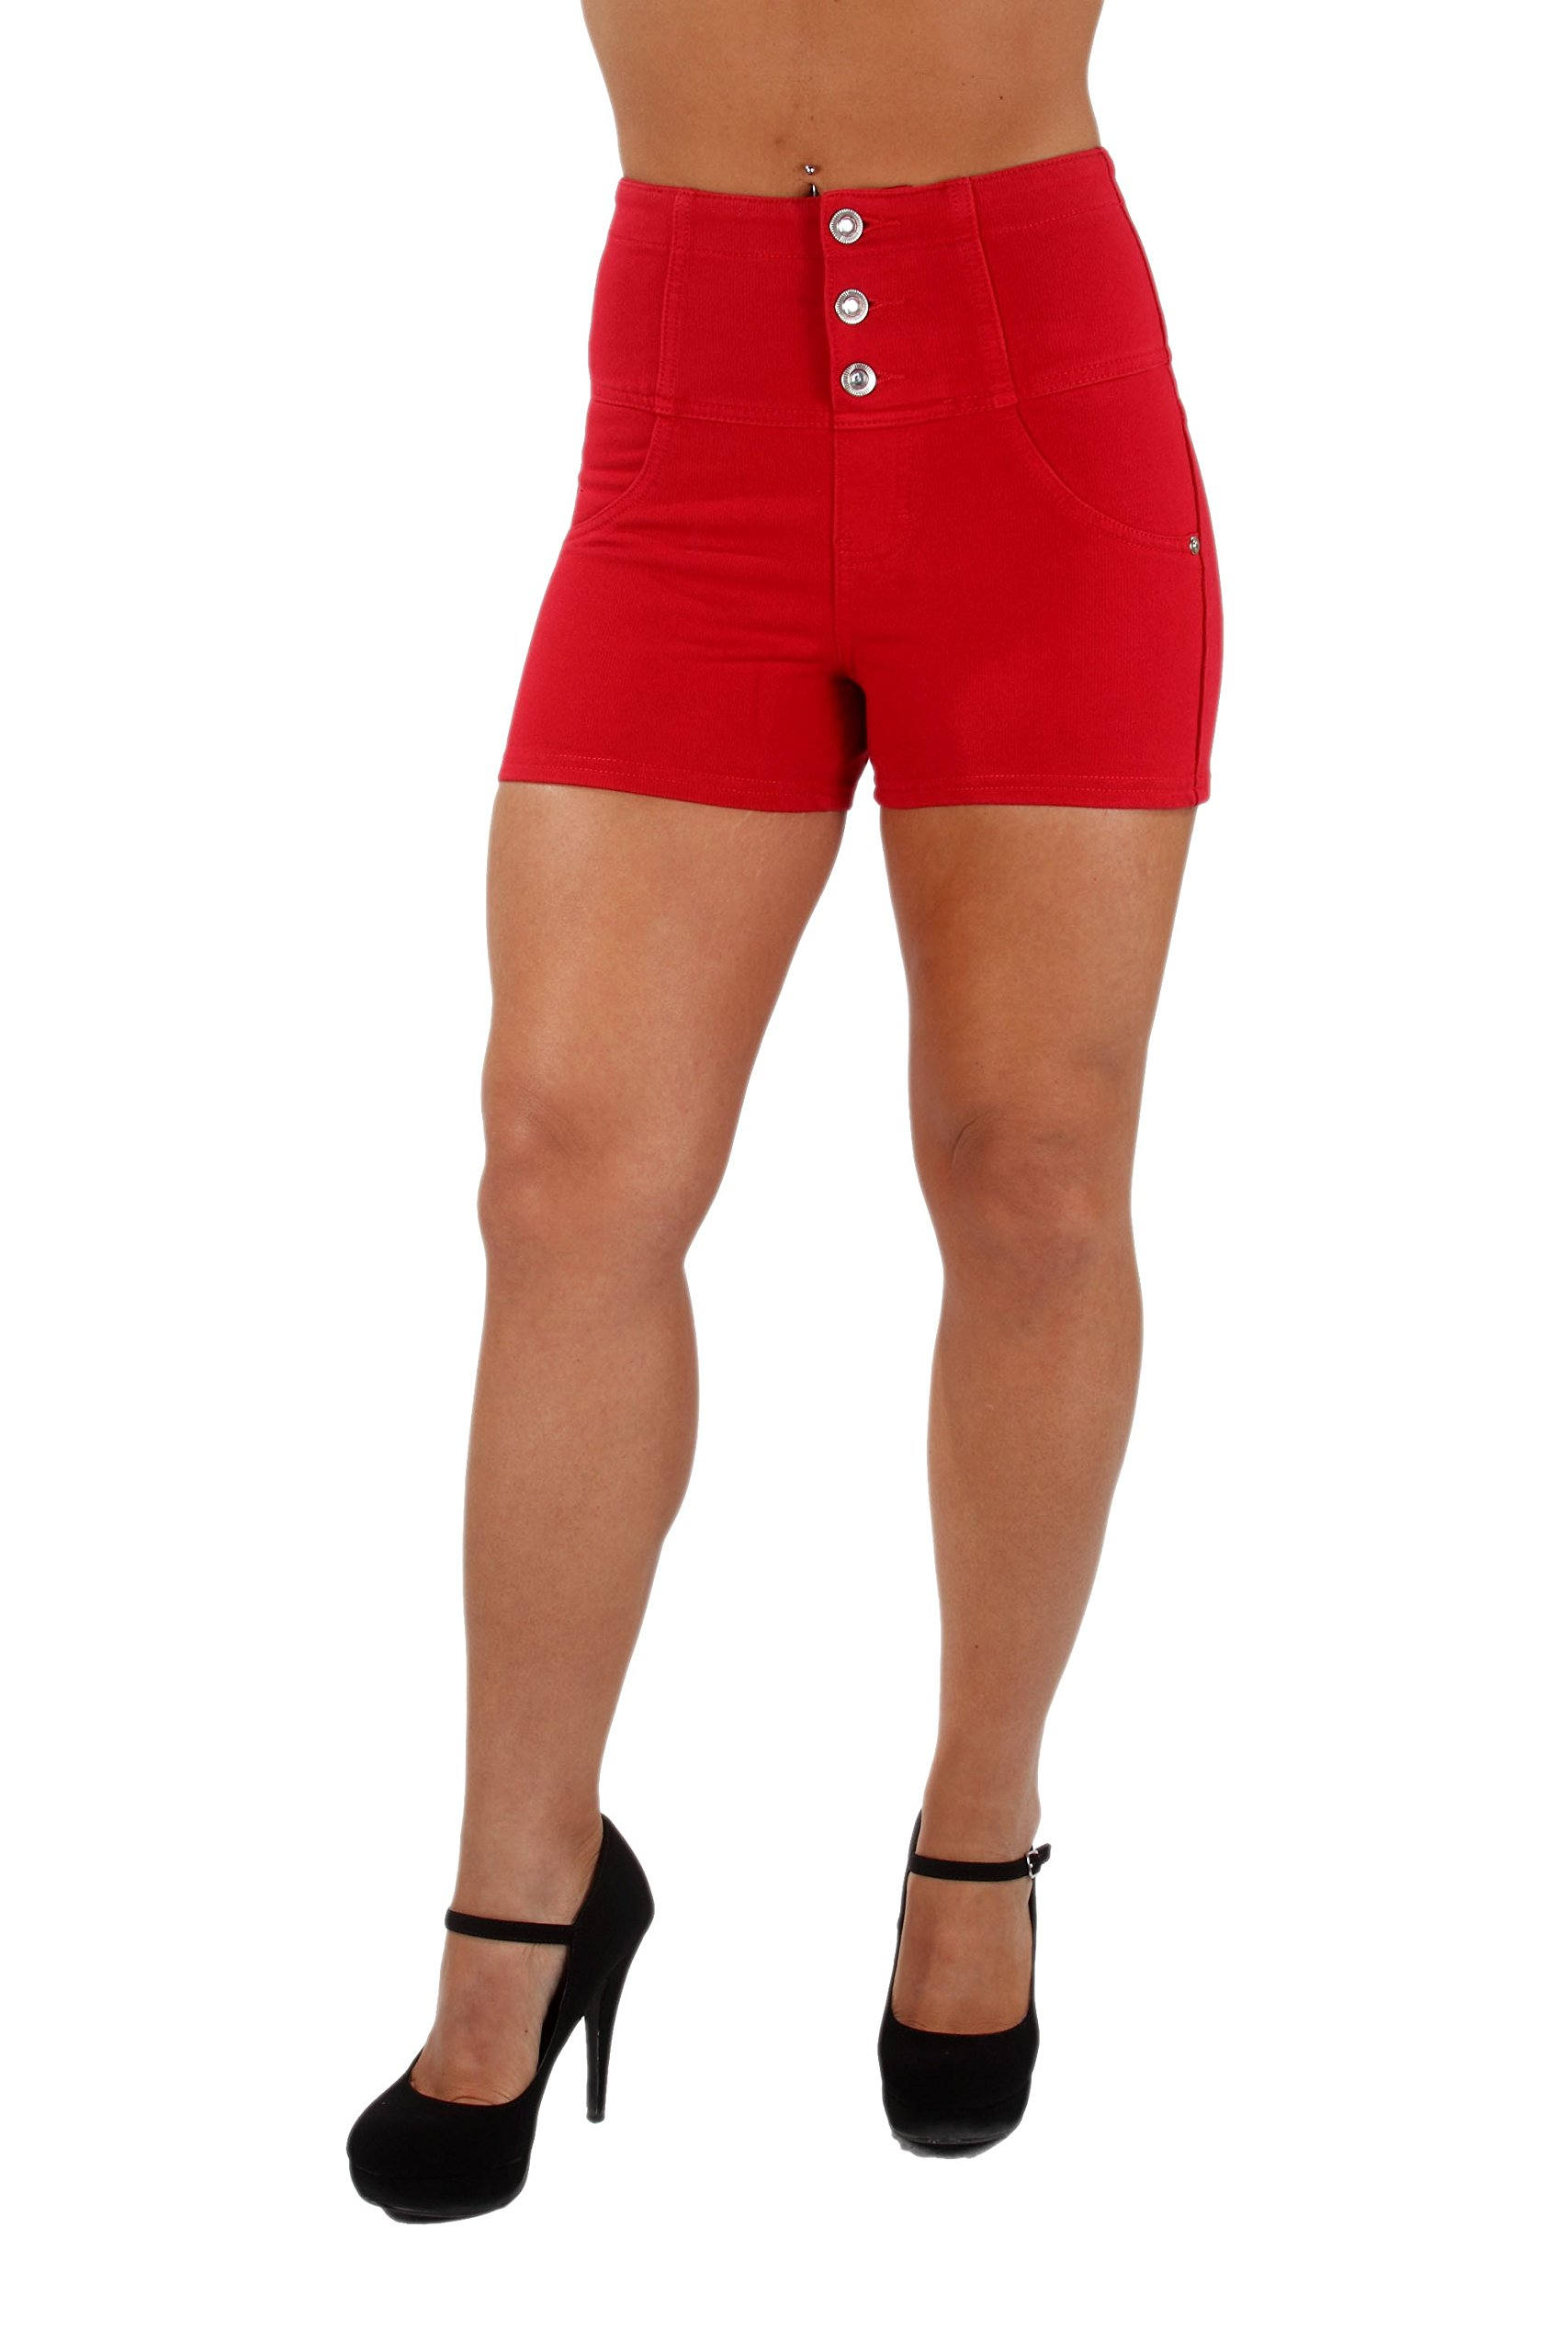 U-Turn Jeans Style 3004 Colombian style Sexy Stretch Moleton Butt lift Push-Up High-Waist Booty Shorts in Red Size XL